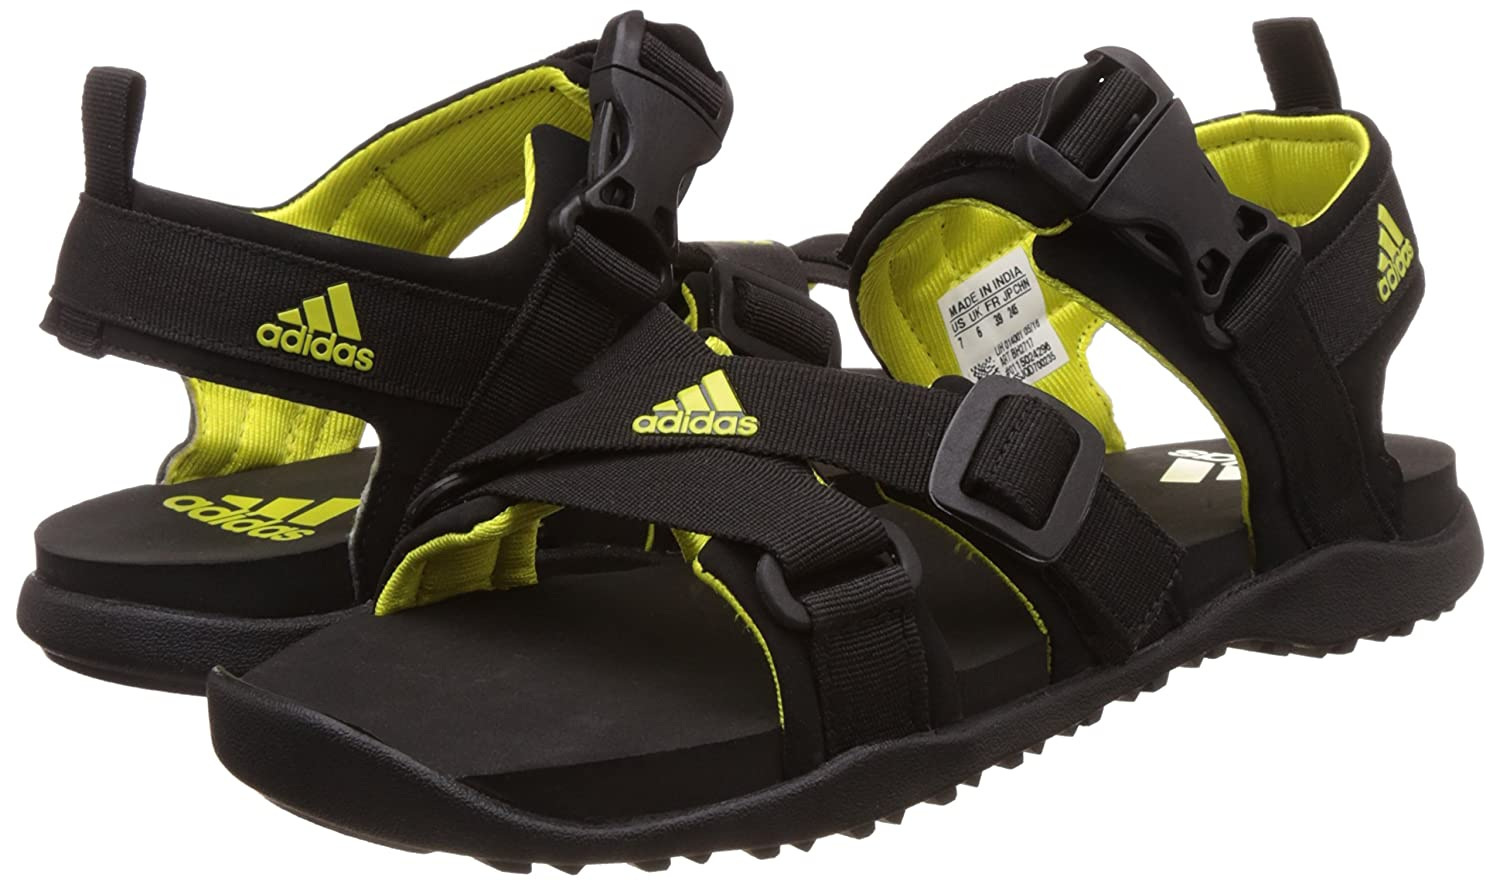 e3986fe7af7 Adidas Women s Gladi W Black and Shosli Leather Athletic and Outdoor  Sandals - 4 UK India (36.7 EU)  Amazon.in  Shoes   Handbags